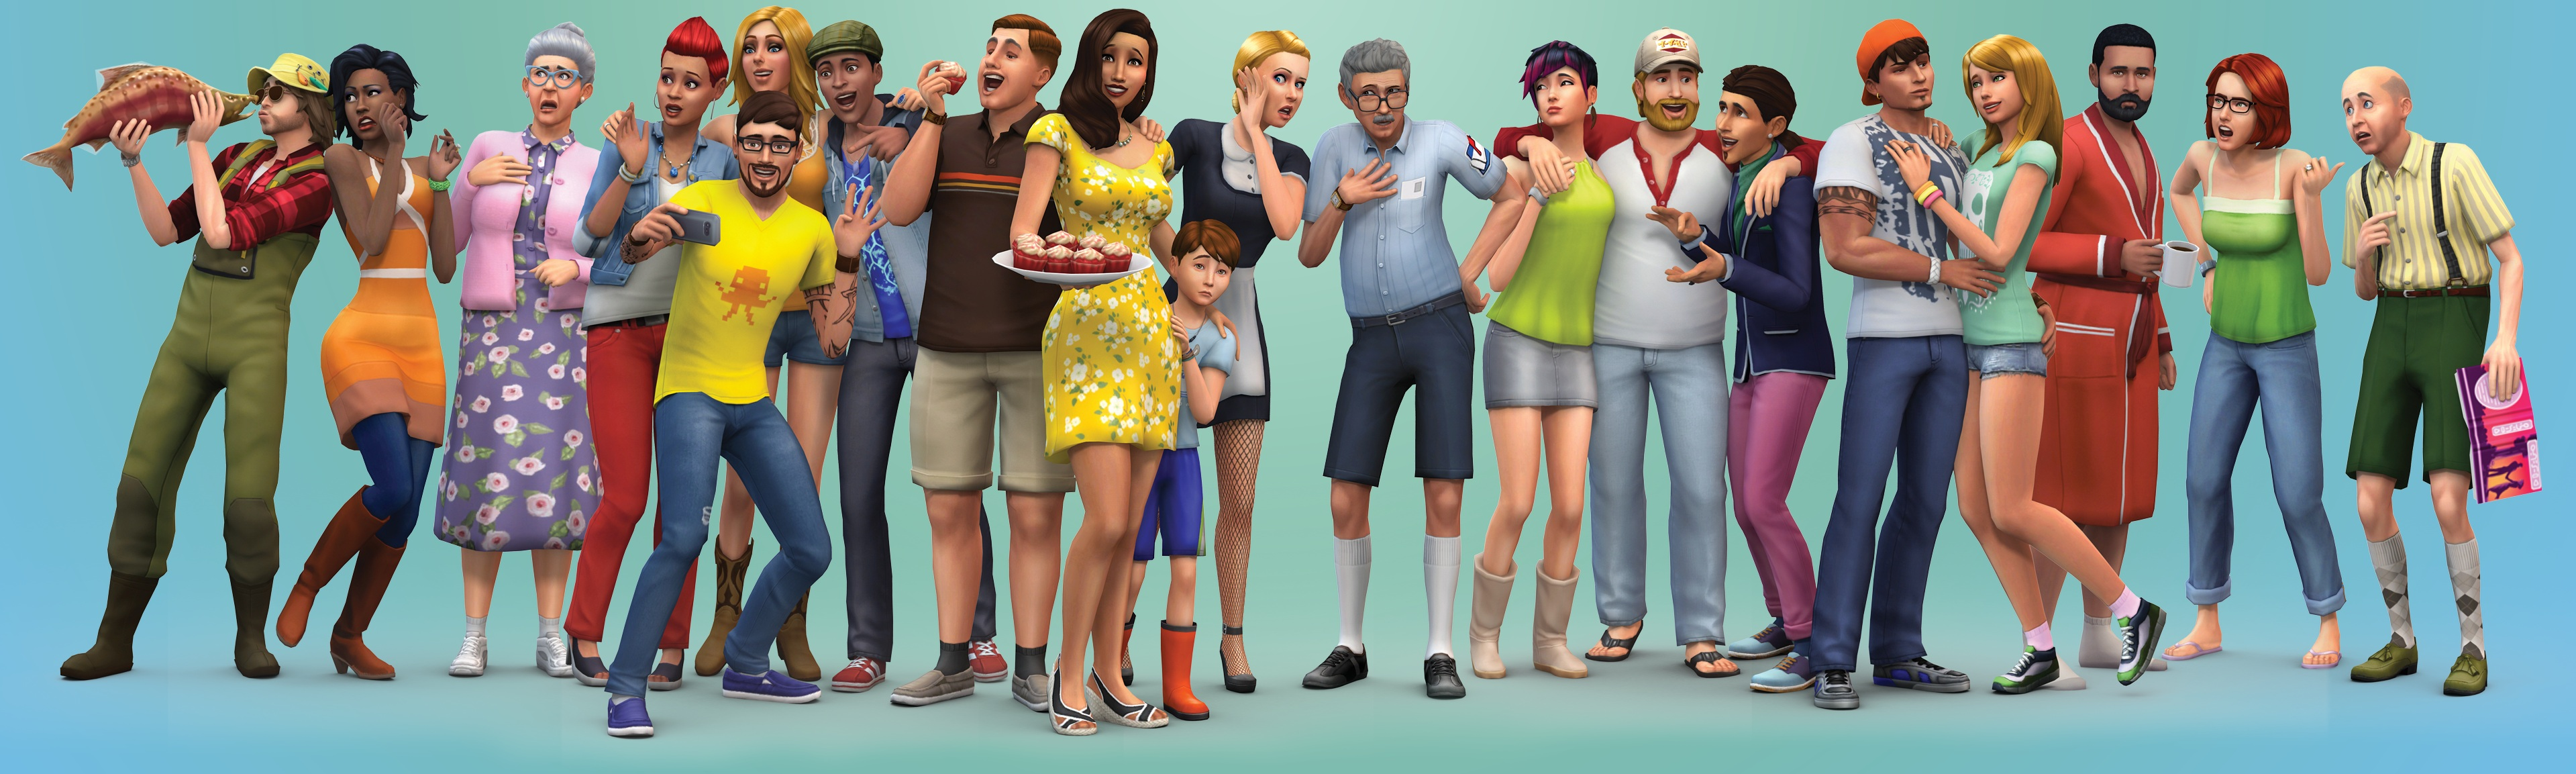 Sims 4 Cheats Codes: Complete List of Mods Including Aspirations